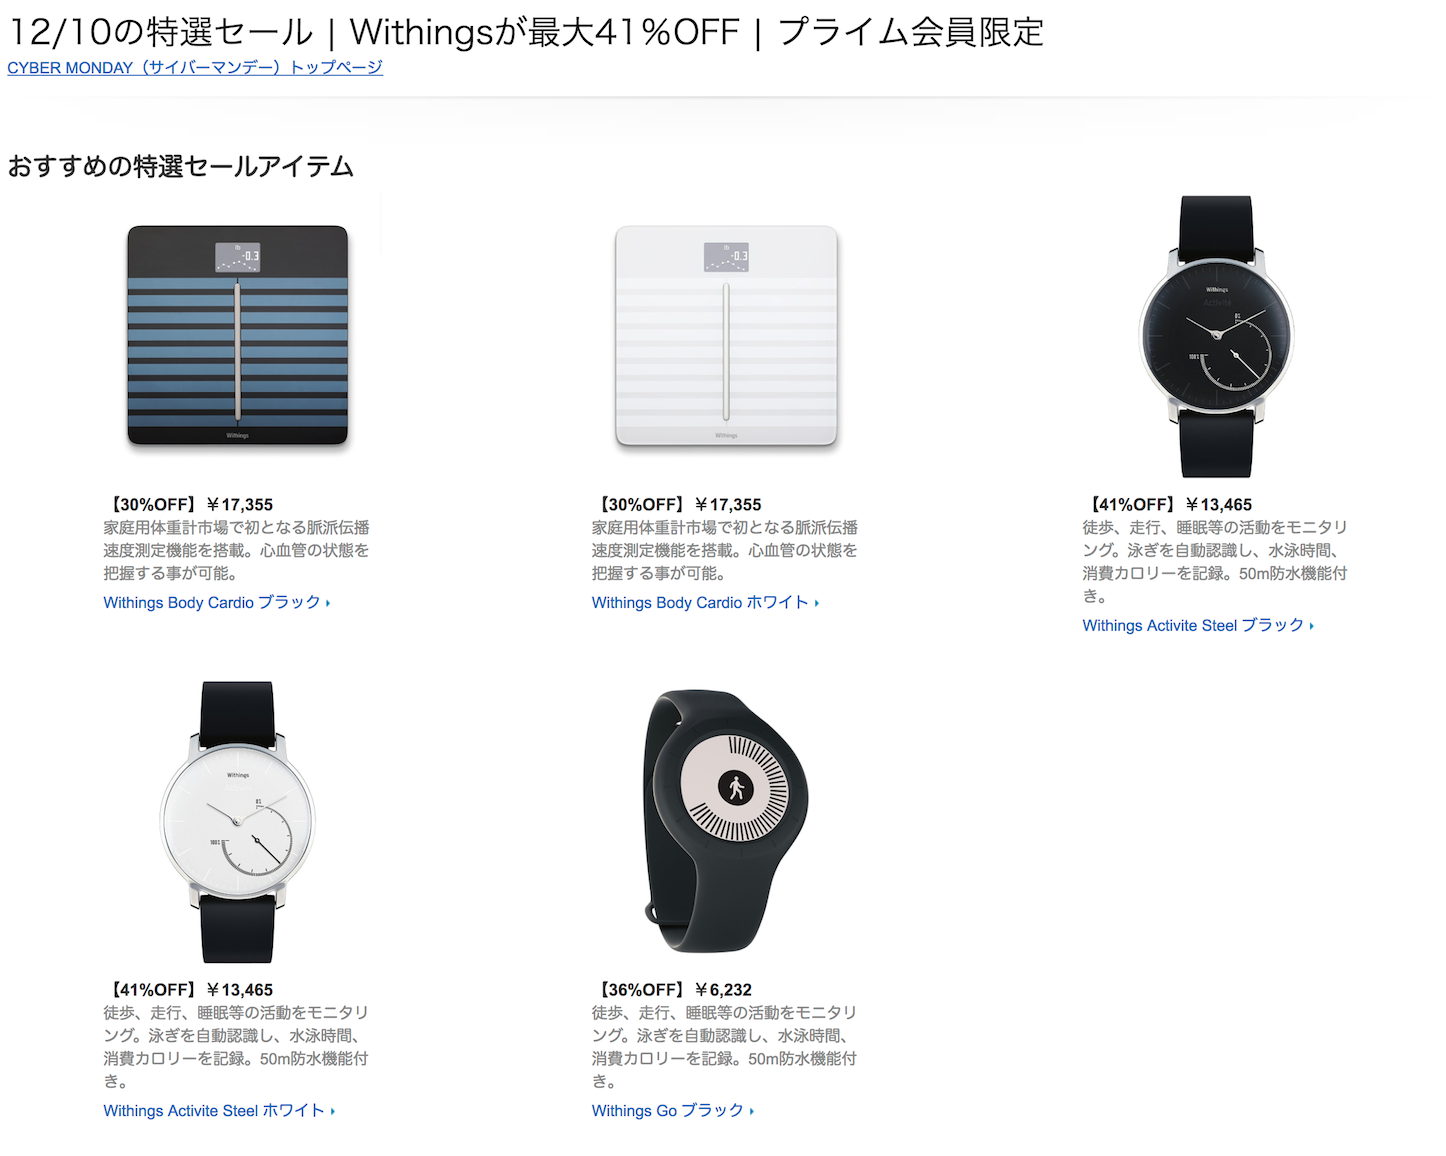 Withings Cyber Monday Sale